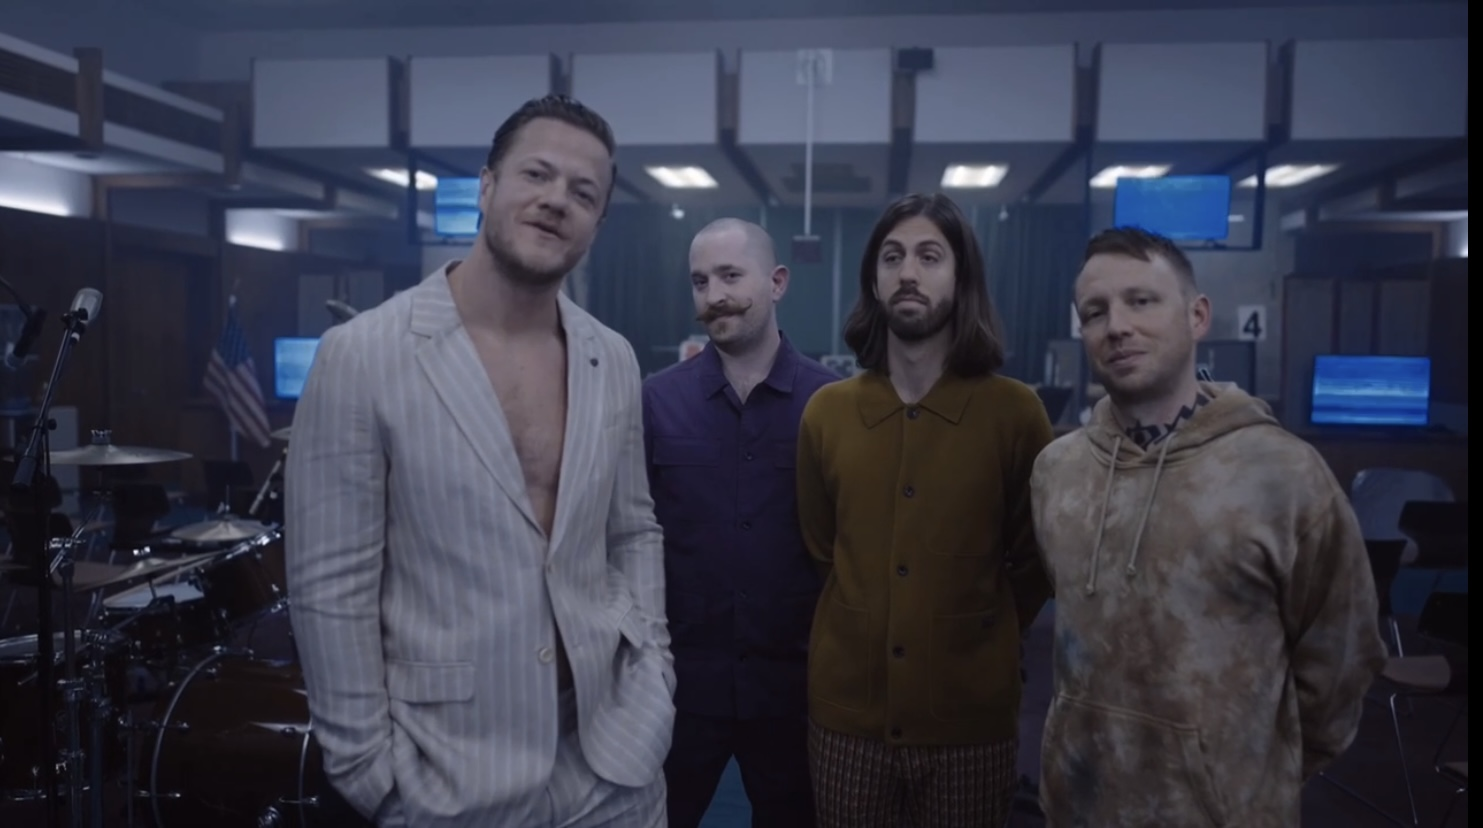 How Imagine Dragons Used Gigg's Platform to Generate Half-Million Site Visits